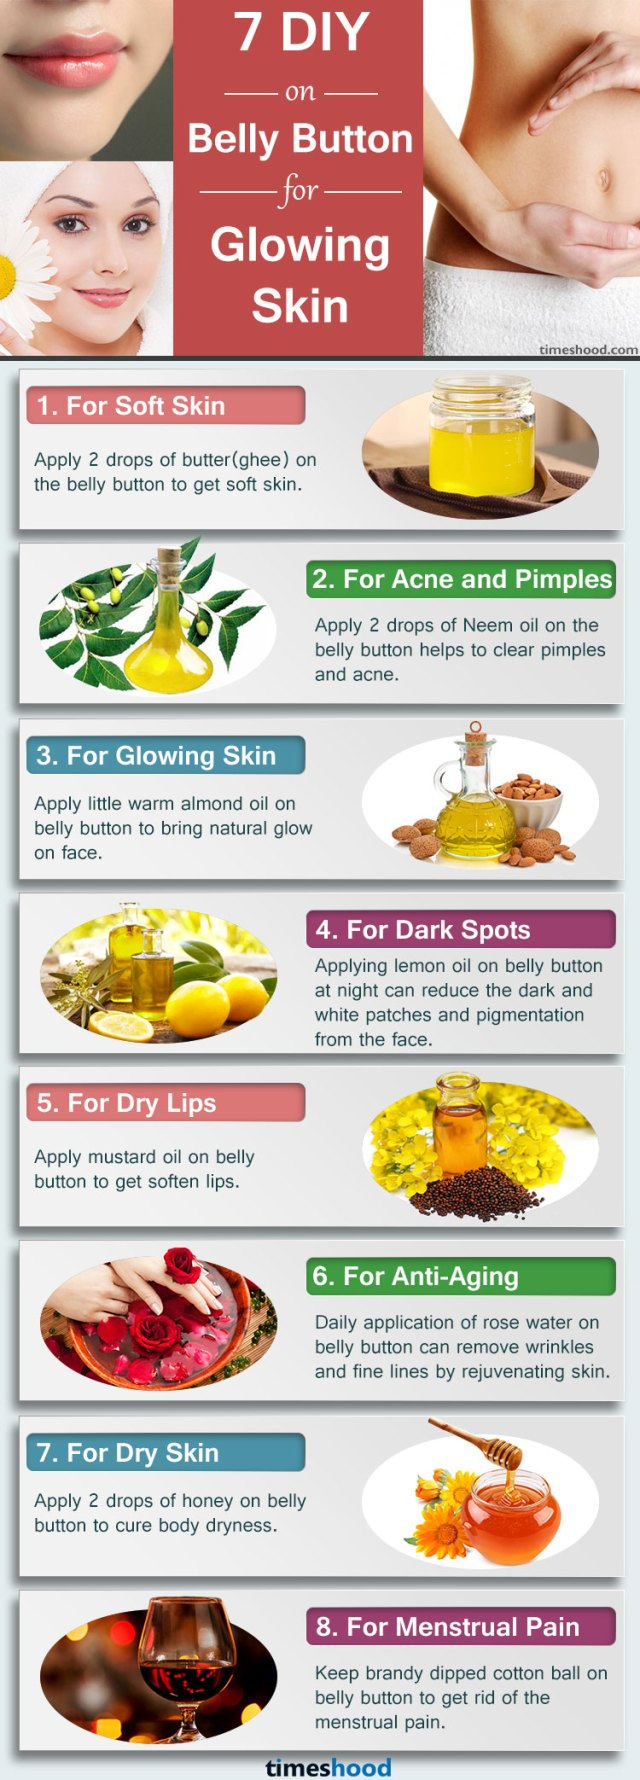 7 DIY Ingredients on Belly Button for glowing skin, Benefits of Putting Oil on Navel,  Tips for Glowing Skin, skin care tips anti aging, skin care tips for acne